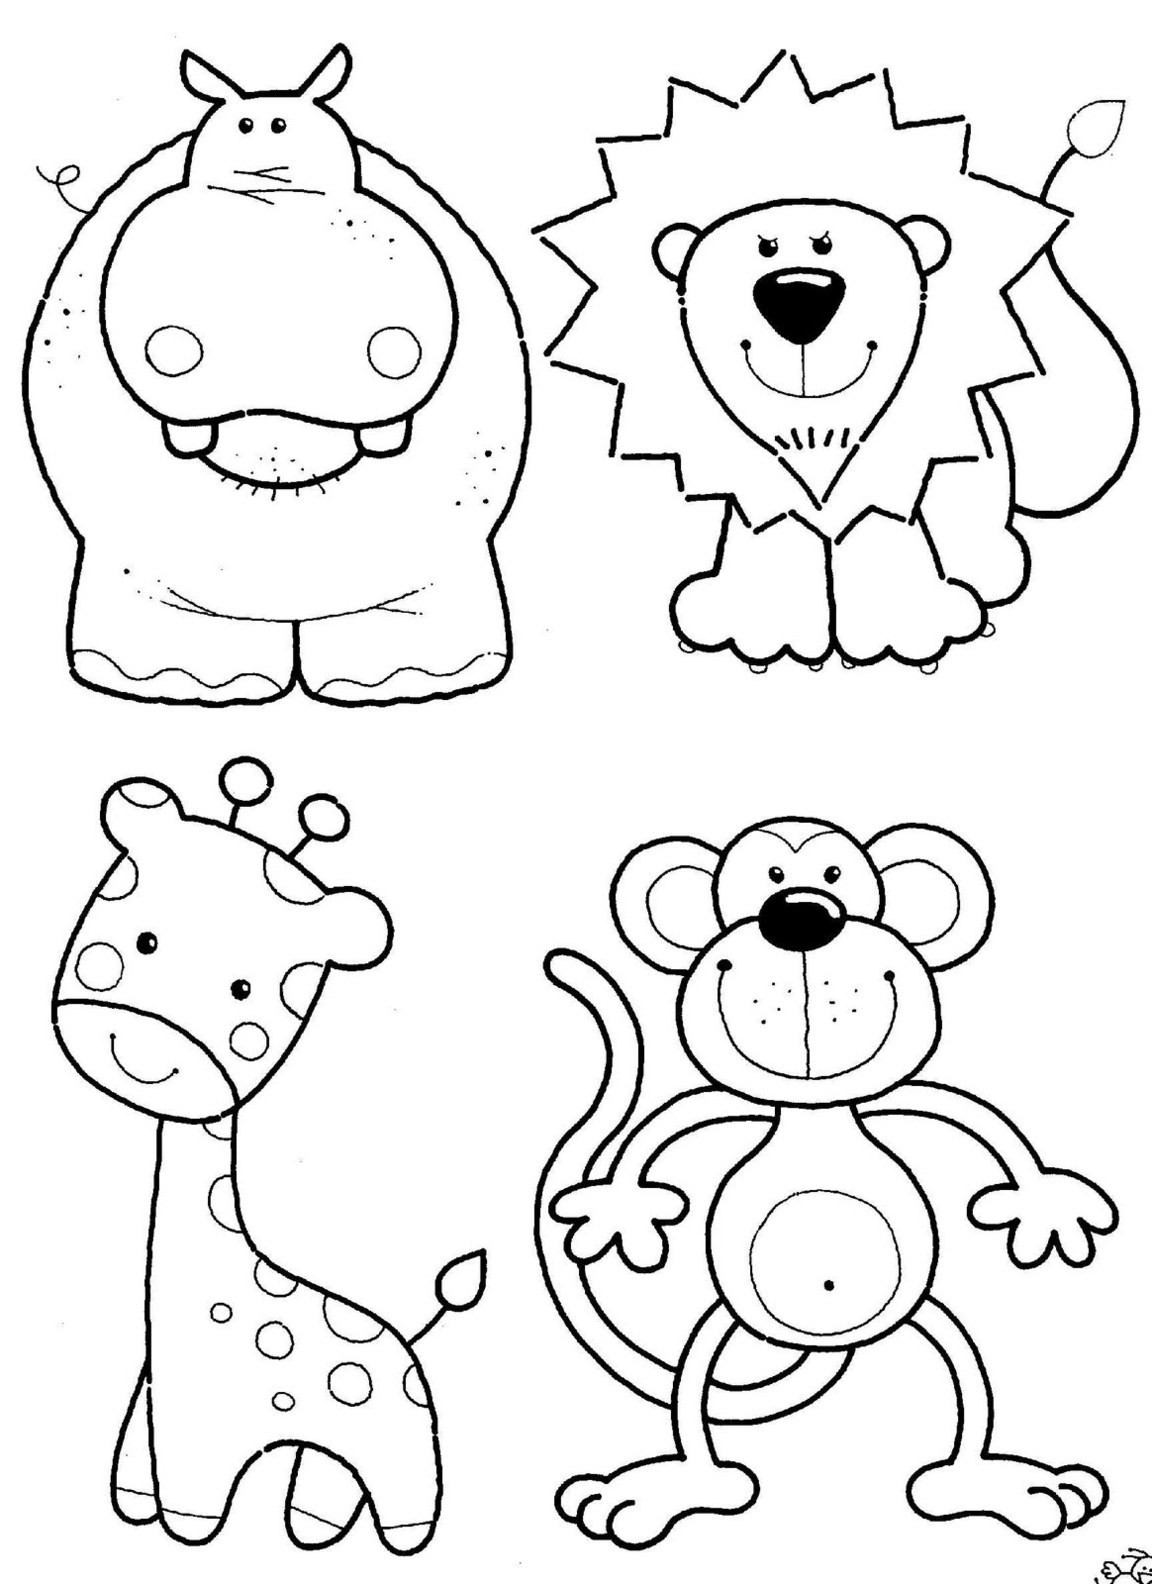 African Safari Coloring Pages Printable 4m - Free For kids